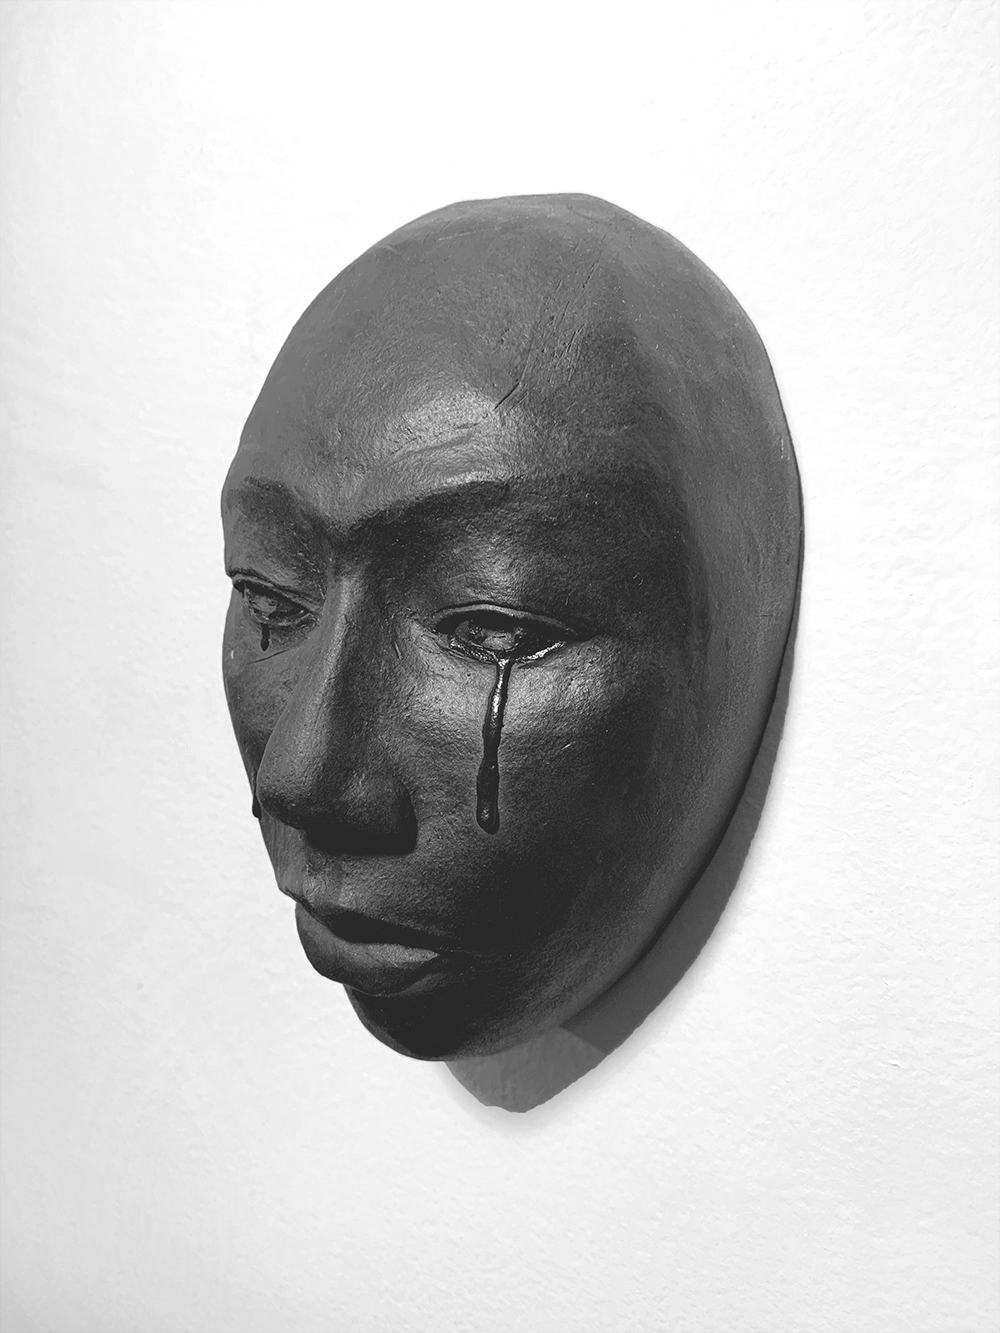 a black ceramic face mounted on a white wall, with a focused facial expression and tears falling from open eyes with a closed mouth.